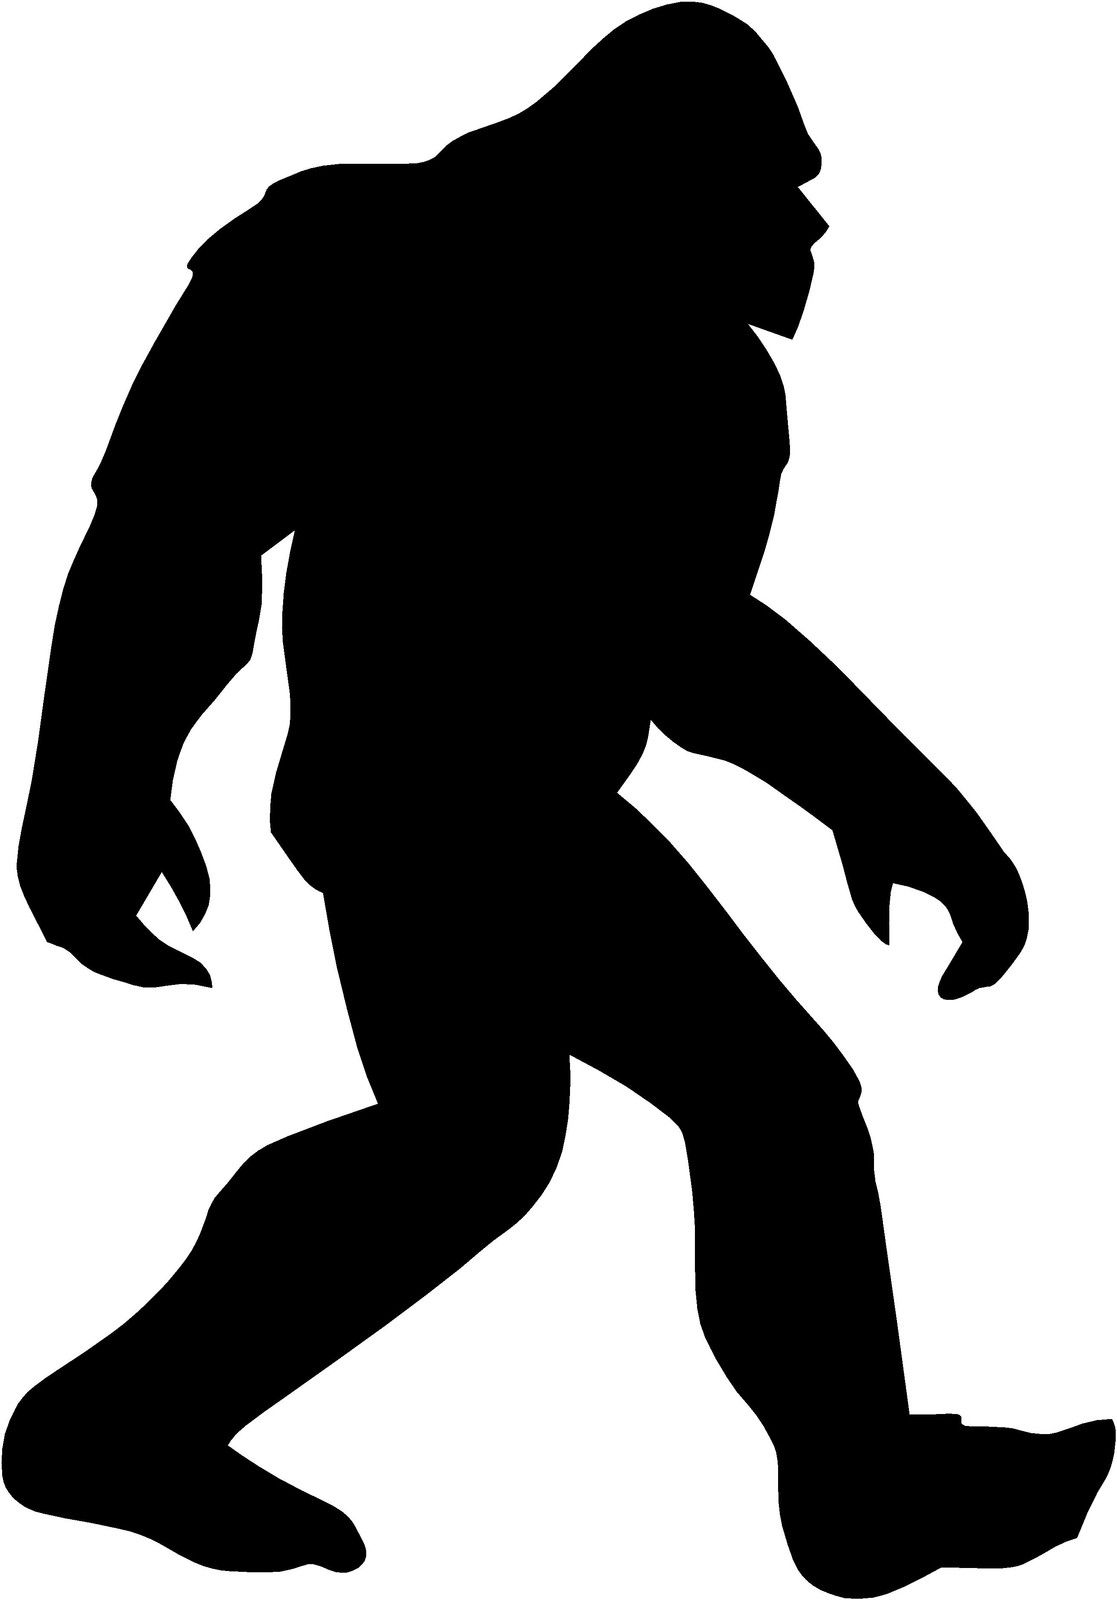 sasquatch decal x. Bigfoot clipart yeti